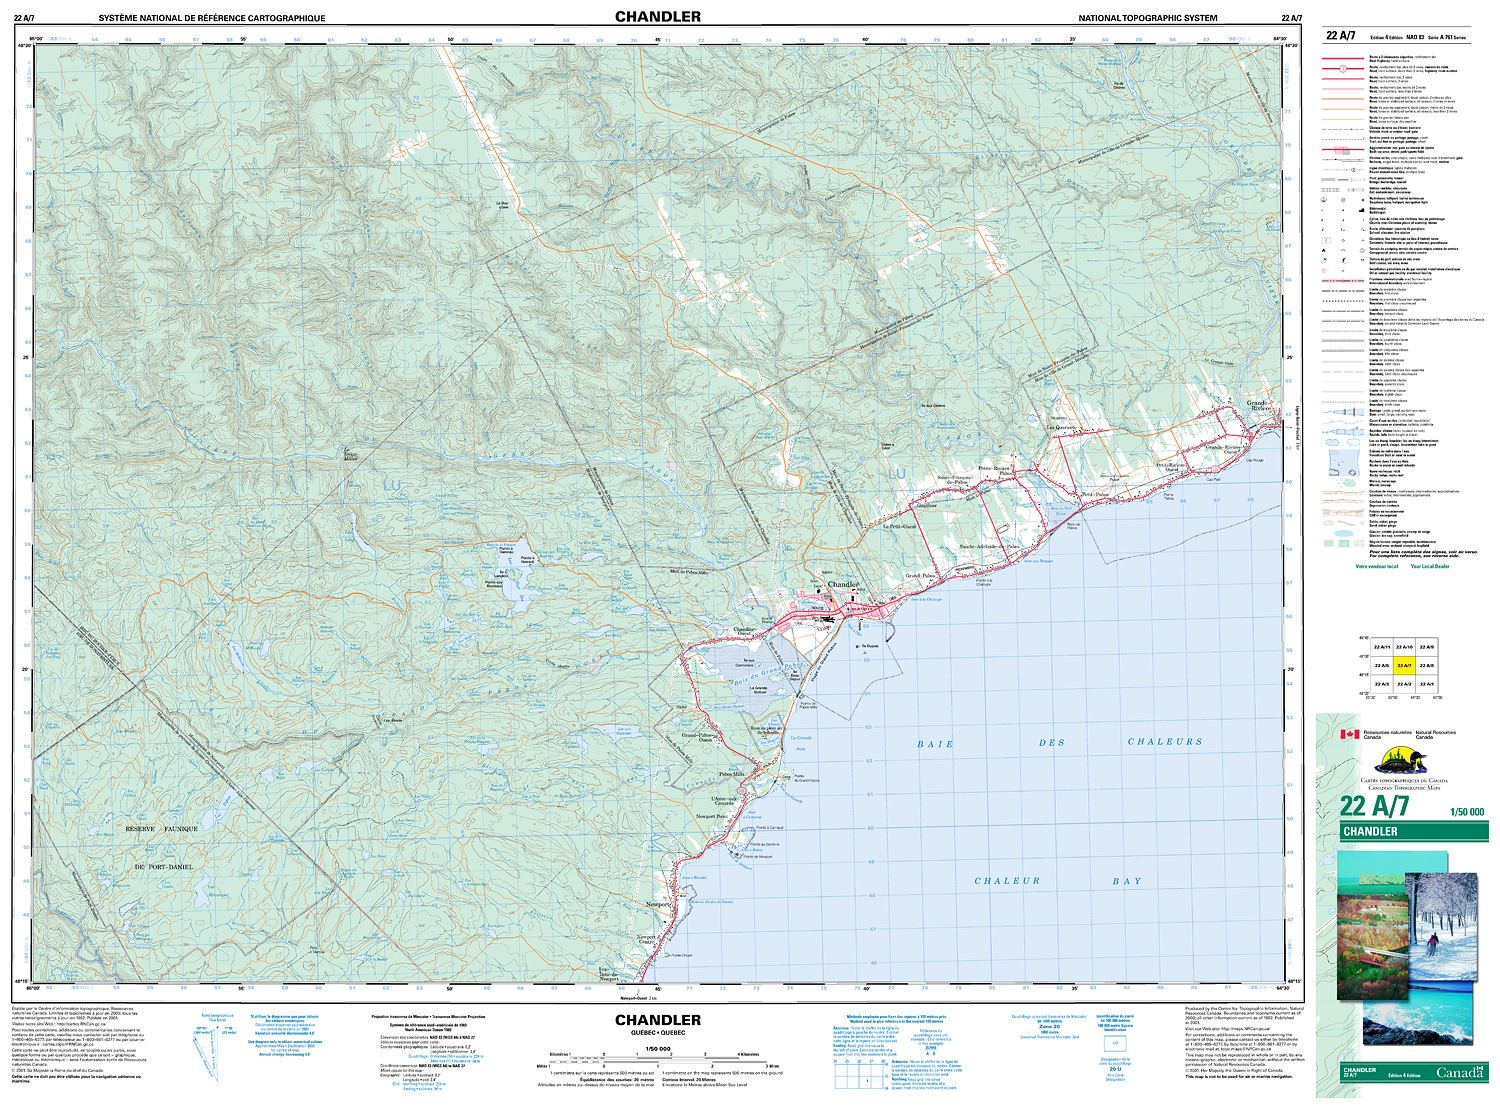 022A07 - CHANDLER - Topographic Map on